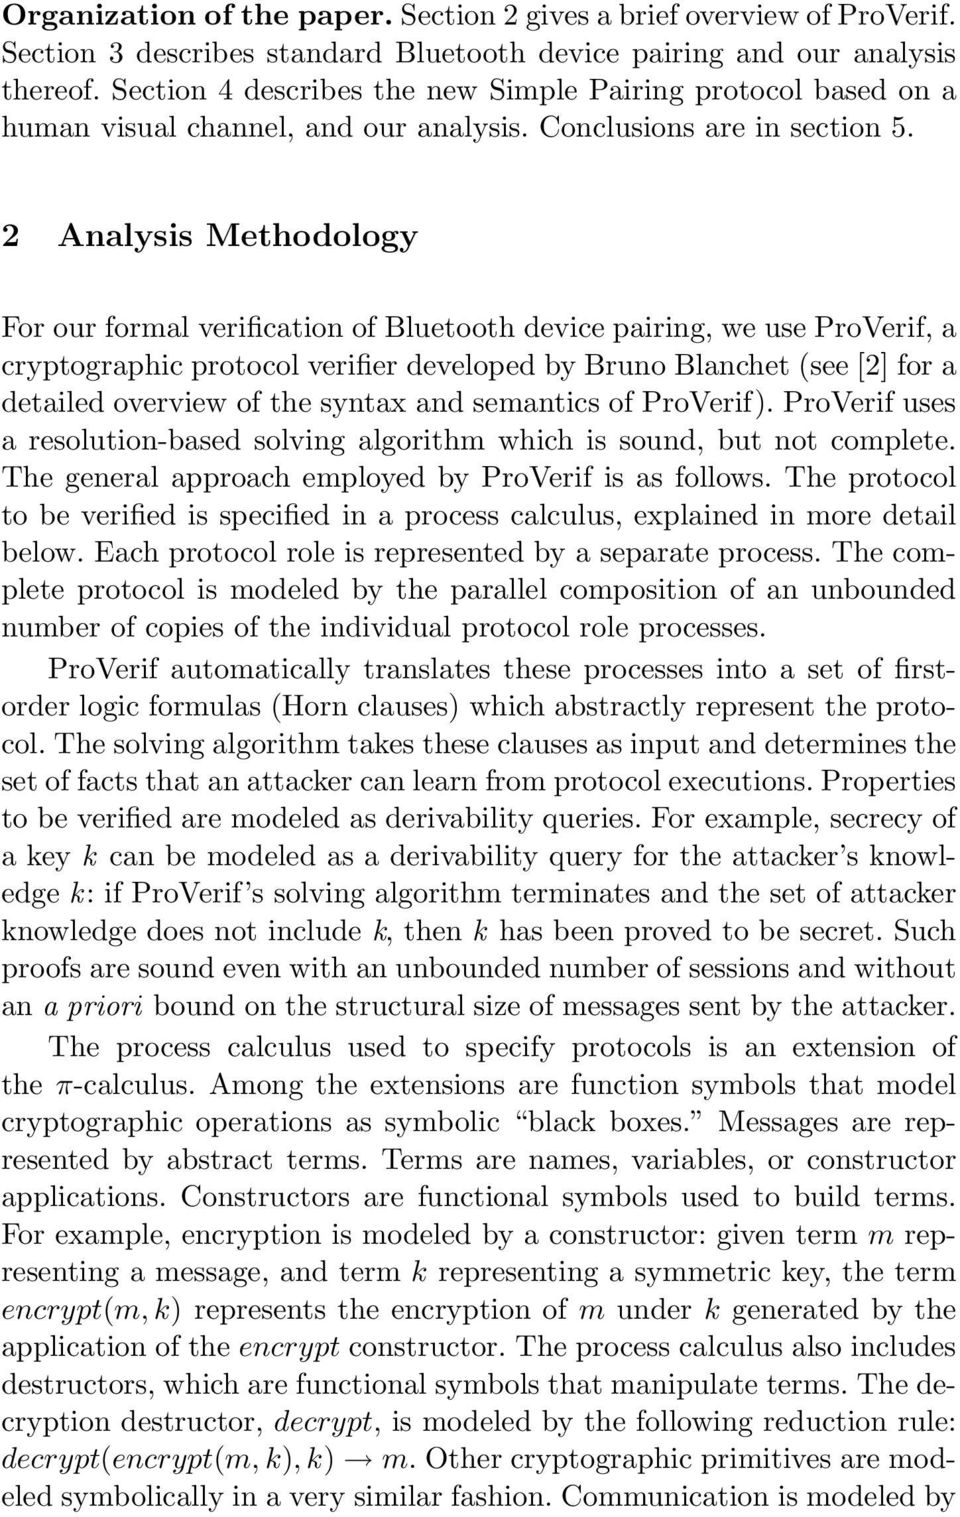 2 Analysis Methodology For our formal verification of Bluetooth device pairing, we use ProVerif, a cryptographic protocol verifier developed by Bruno Blanchet (see [2] for a detailed overview of the